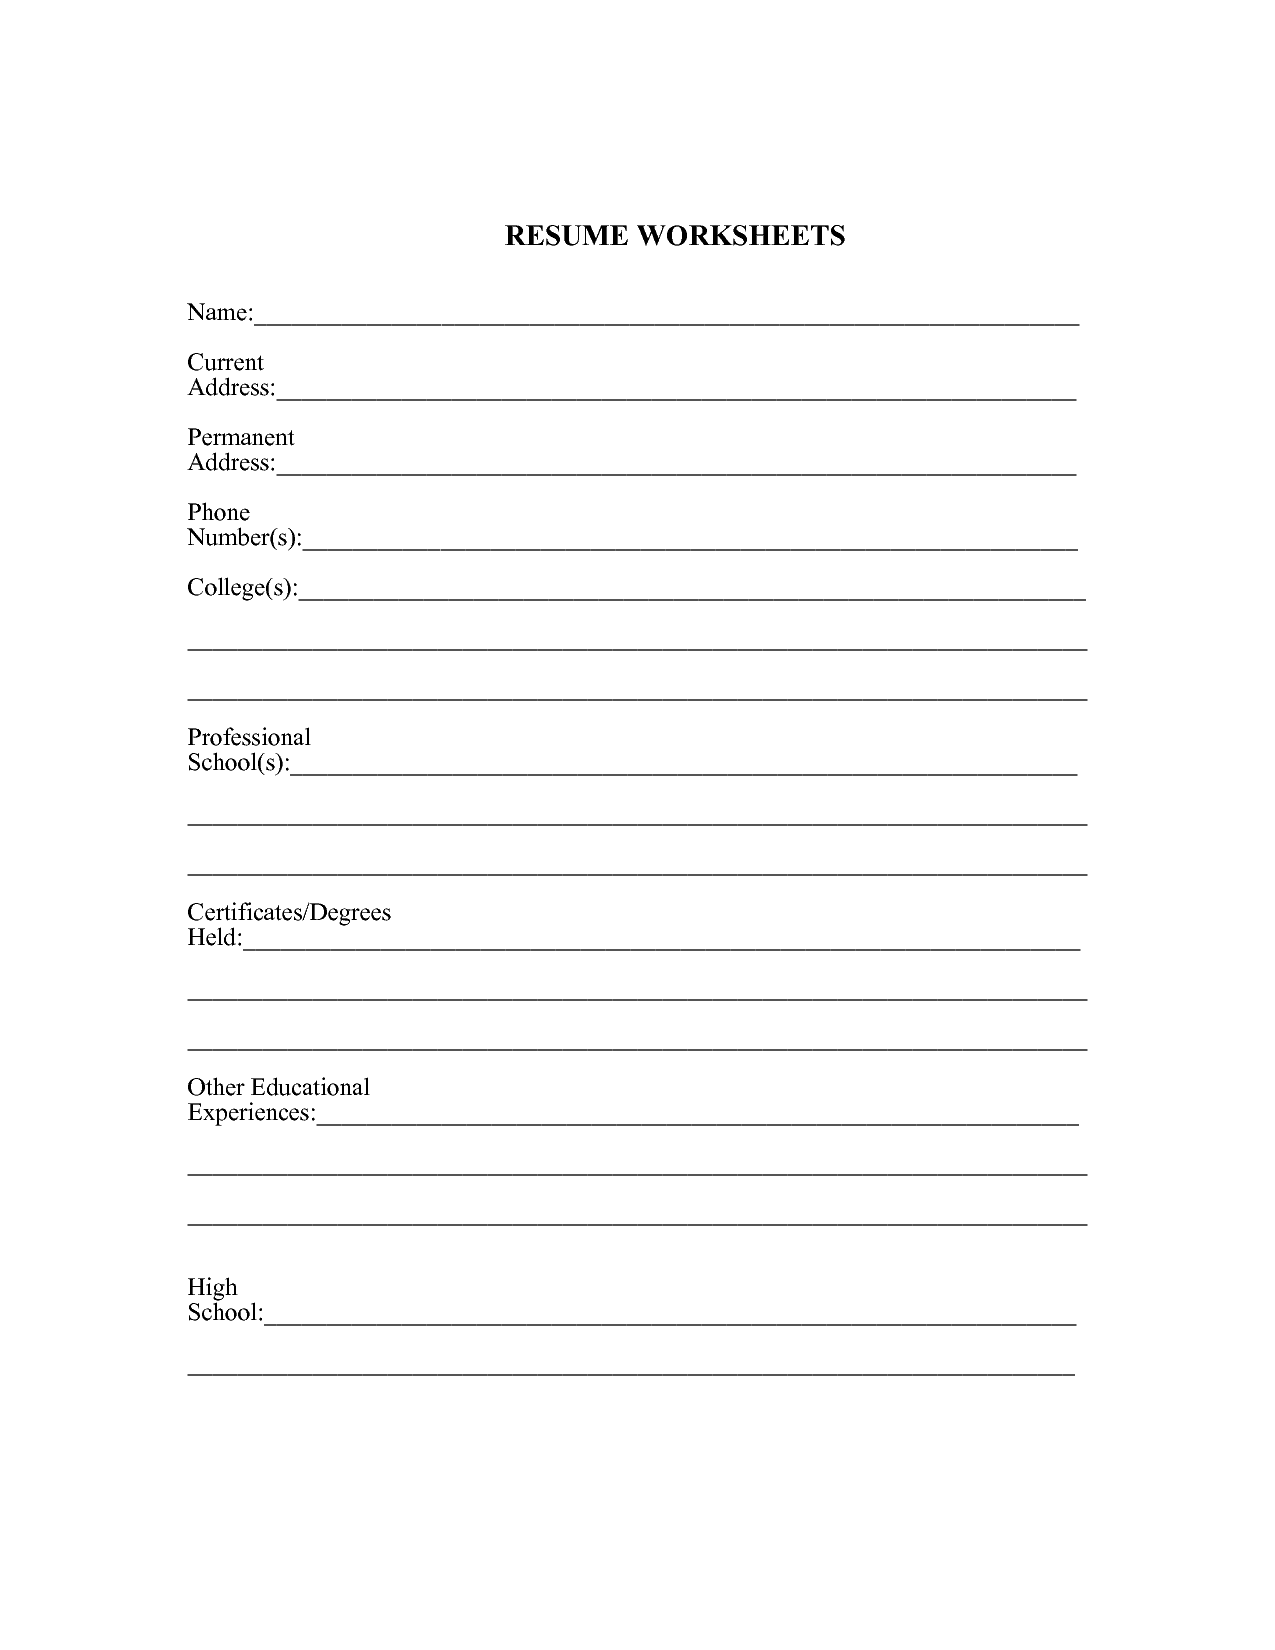 resume writing worksheets practice resume writing practice resume worksheets sample resume